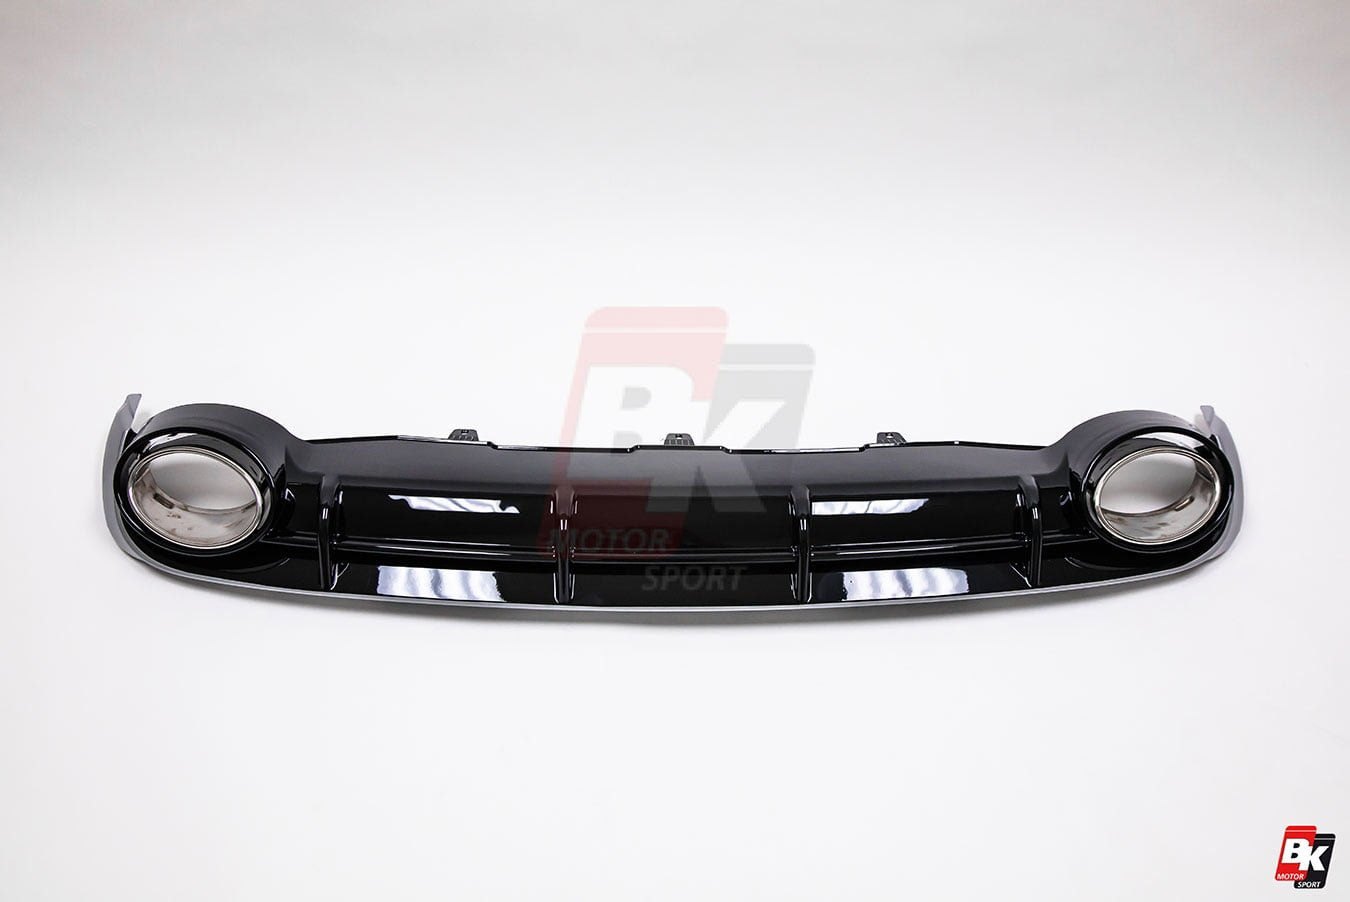 BKM Rear Diffuser (RS Style - Glossy Black), fits Audi A6 C7.0